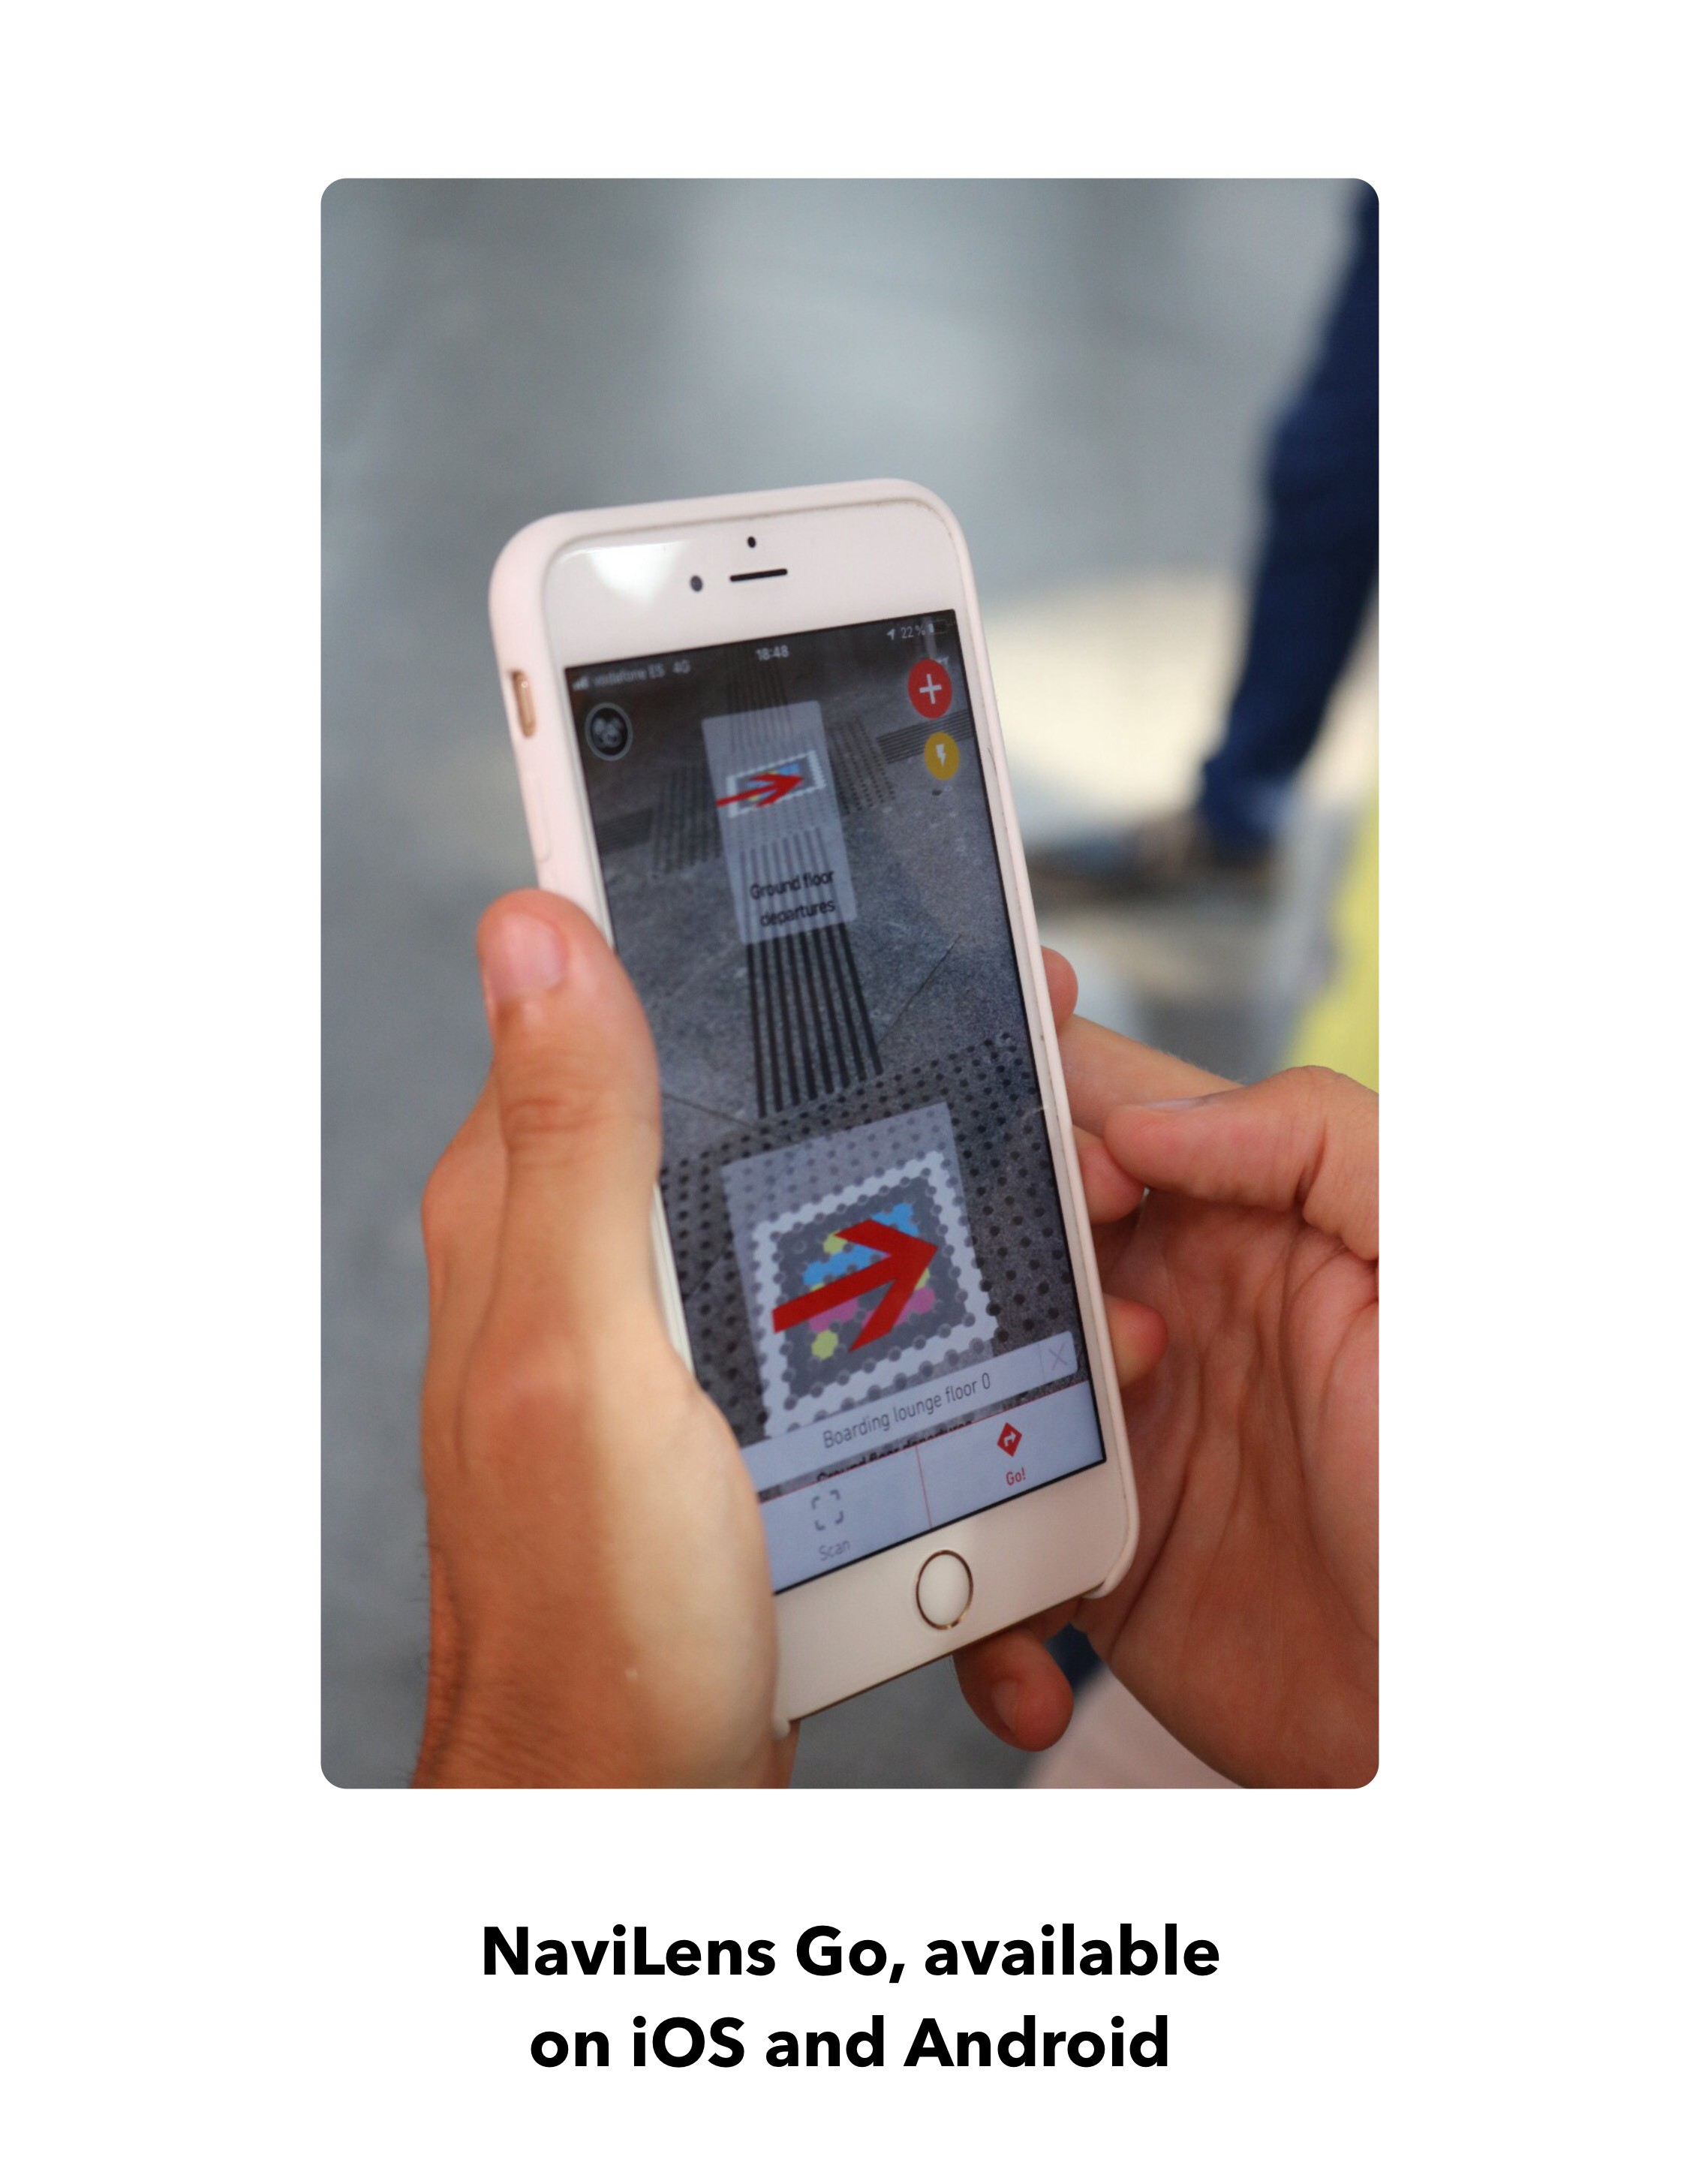 NaviLens GO, an app for sighted users available on iOS and Android.